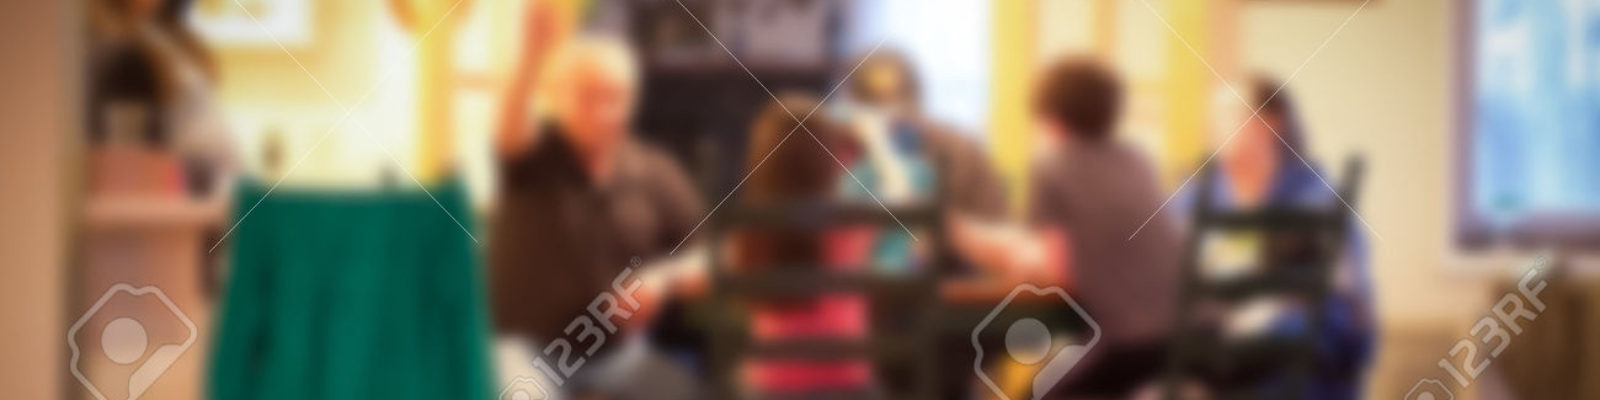 cropped-41785891-Blur-style-of-typical-American-family-dinner-in-kitchen-scene-Stock-Photo.jpg